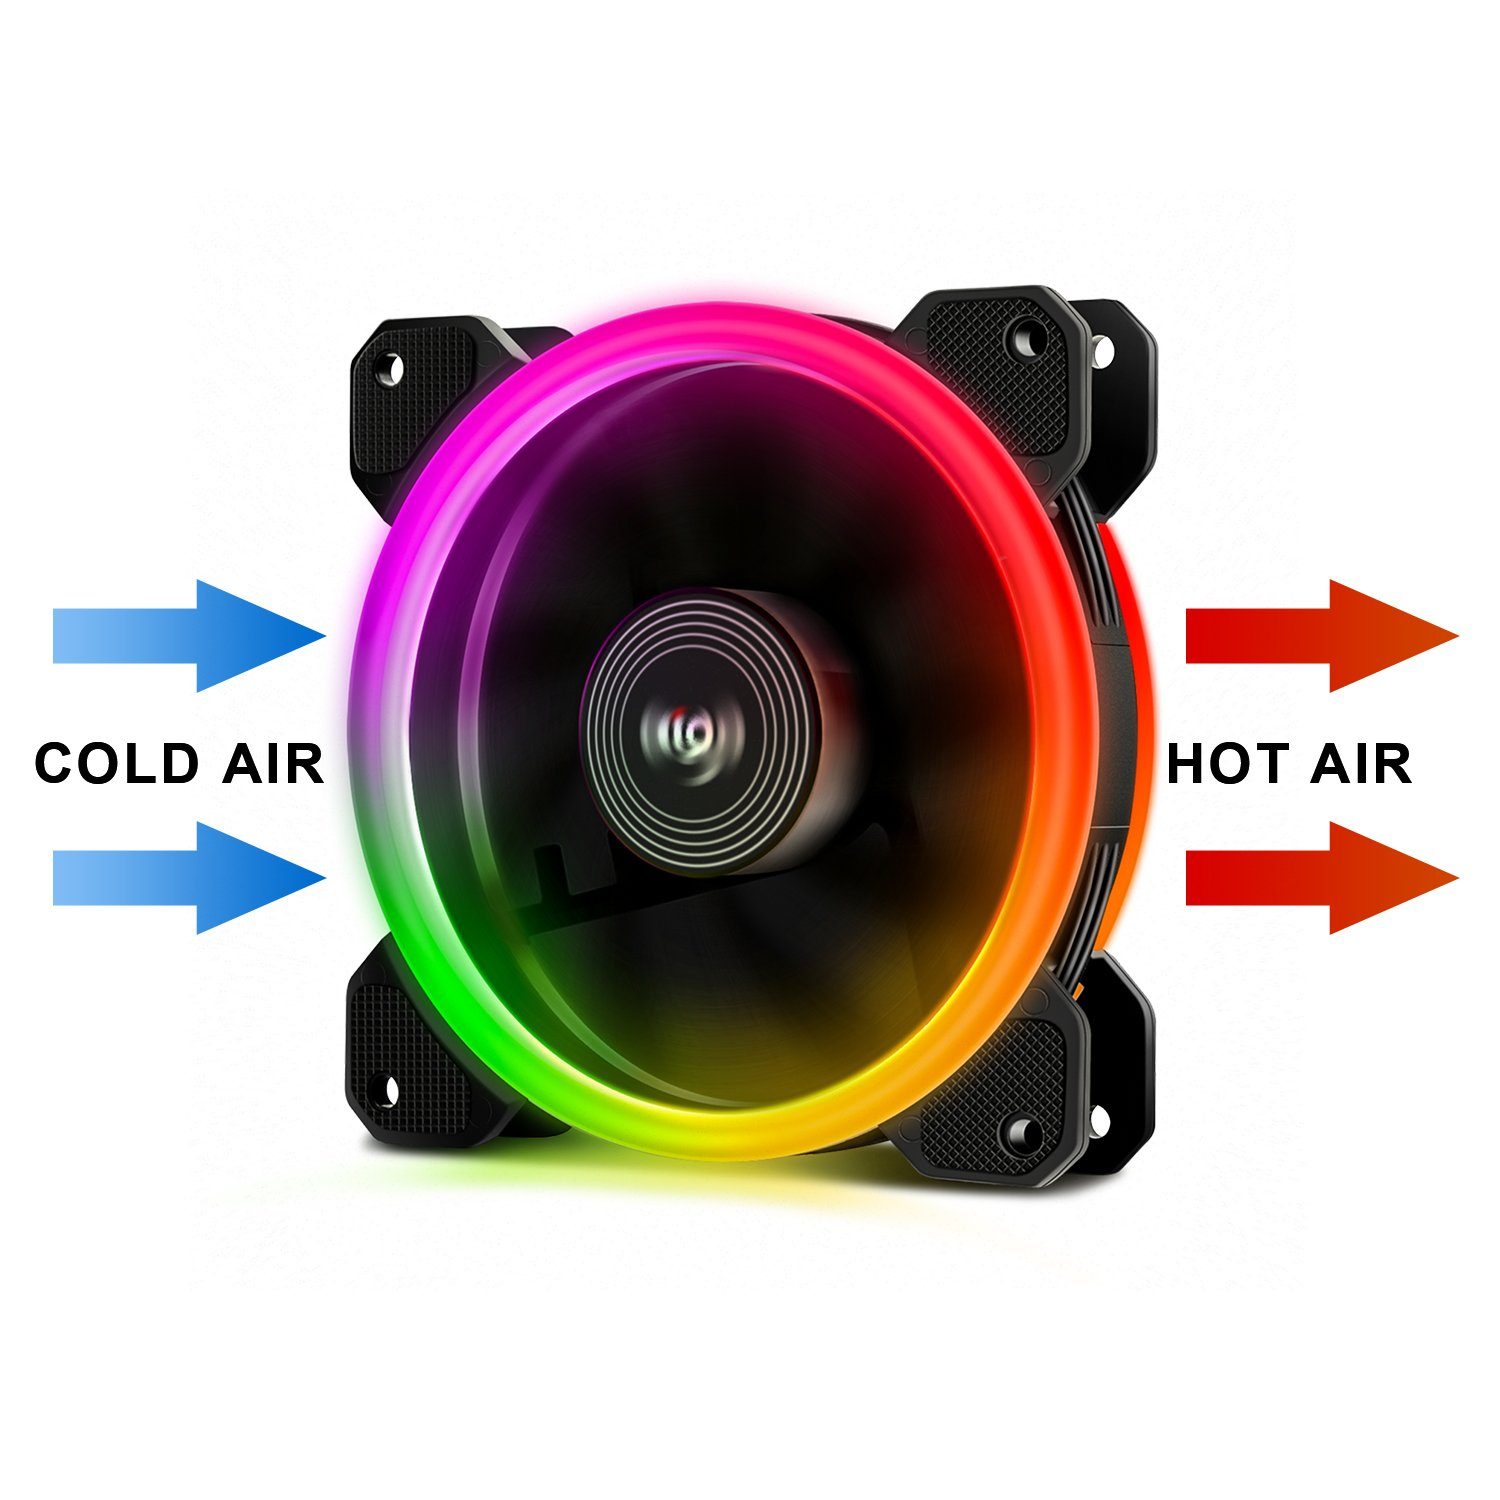 Aigo Aurora DR12 3IN1 Kit Case Fan 3-Pack RGB LED 120mm High Performance High Airflow Adjustable colorful PC CPU Computer Case Cooling Cooler with Controller (DR12 3IN1) by Aigo (Image #4)